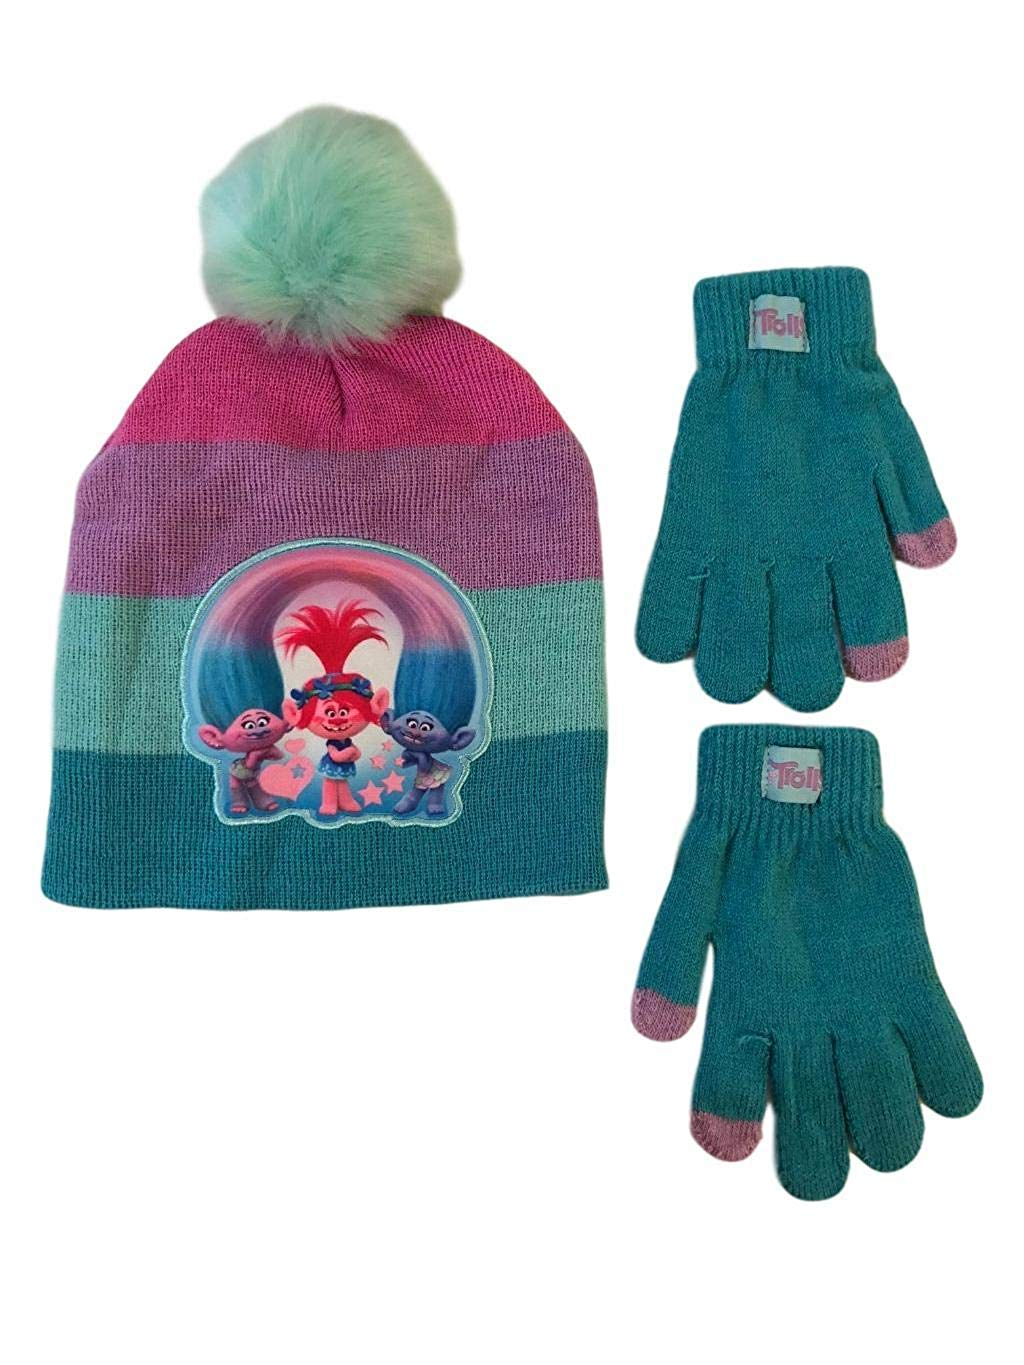 551a9f8645a Get Quotations · Trolls Poppy Girls Beanie Hat and Gloves Touch Tips Winter  Set